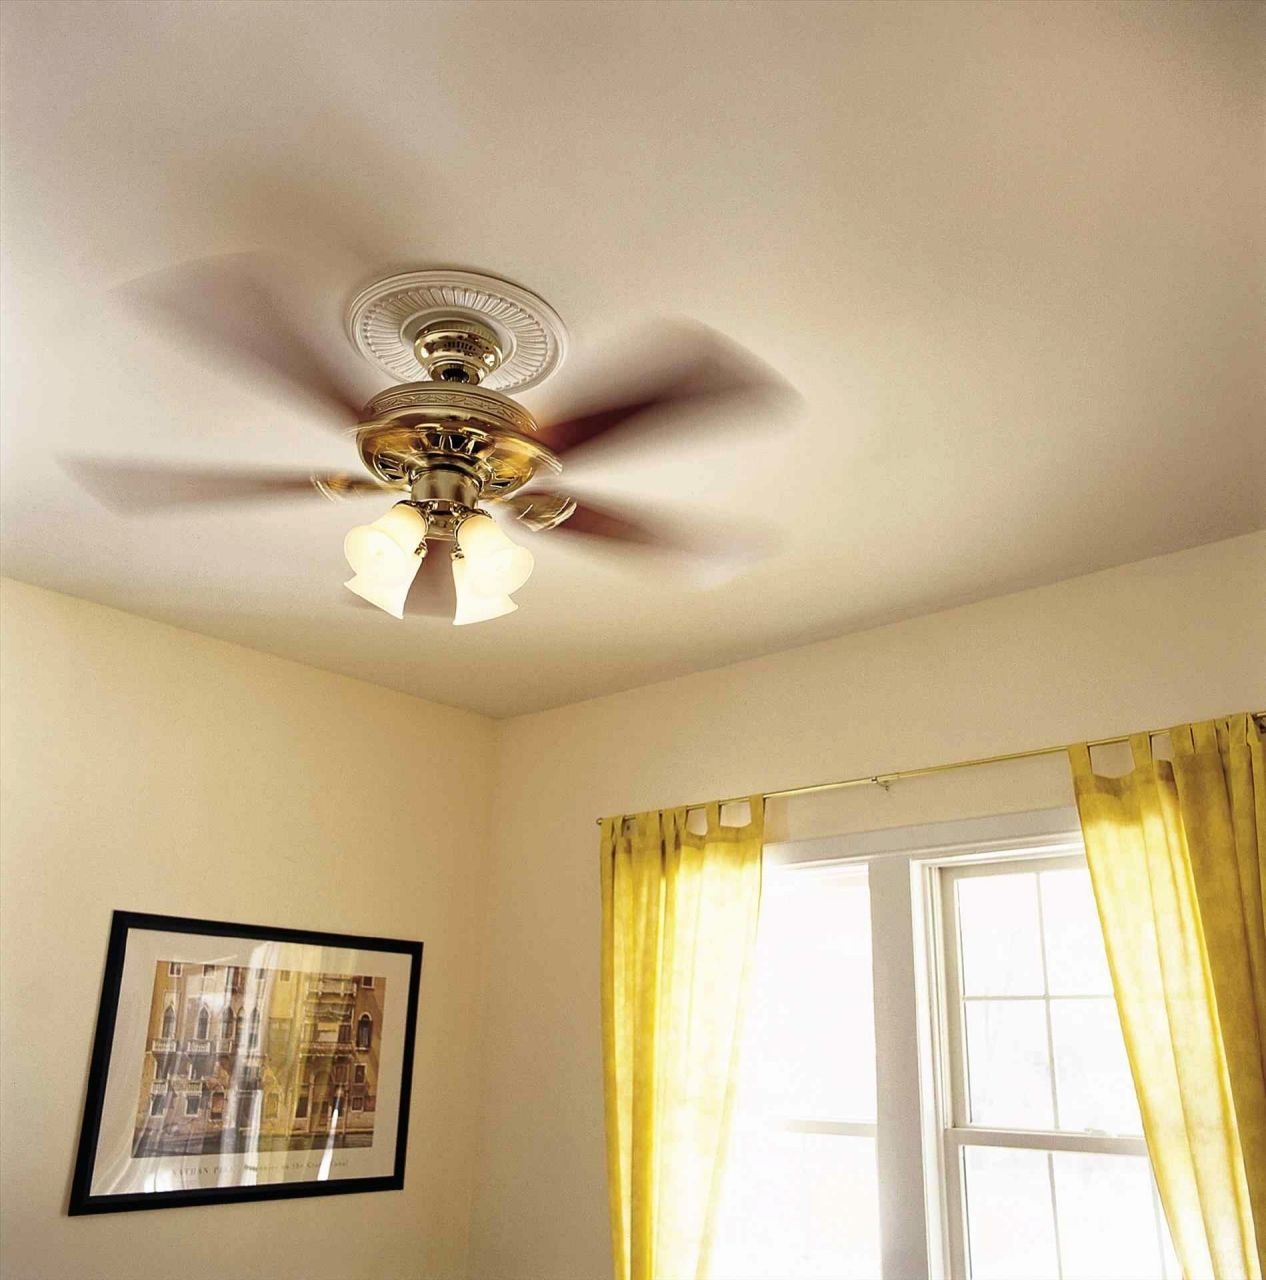 55 No Attic Access Bathroom Fan Check More At Https Www Michelenails Com 50 No Attic Access Bathroom Fan Ceiling Fan Ceiling Home Improvement Projects